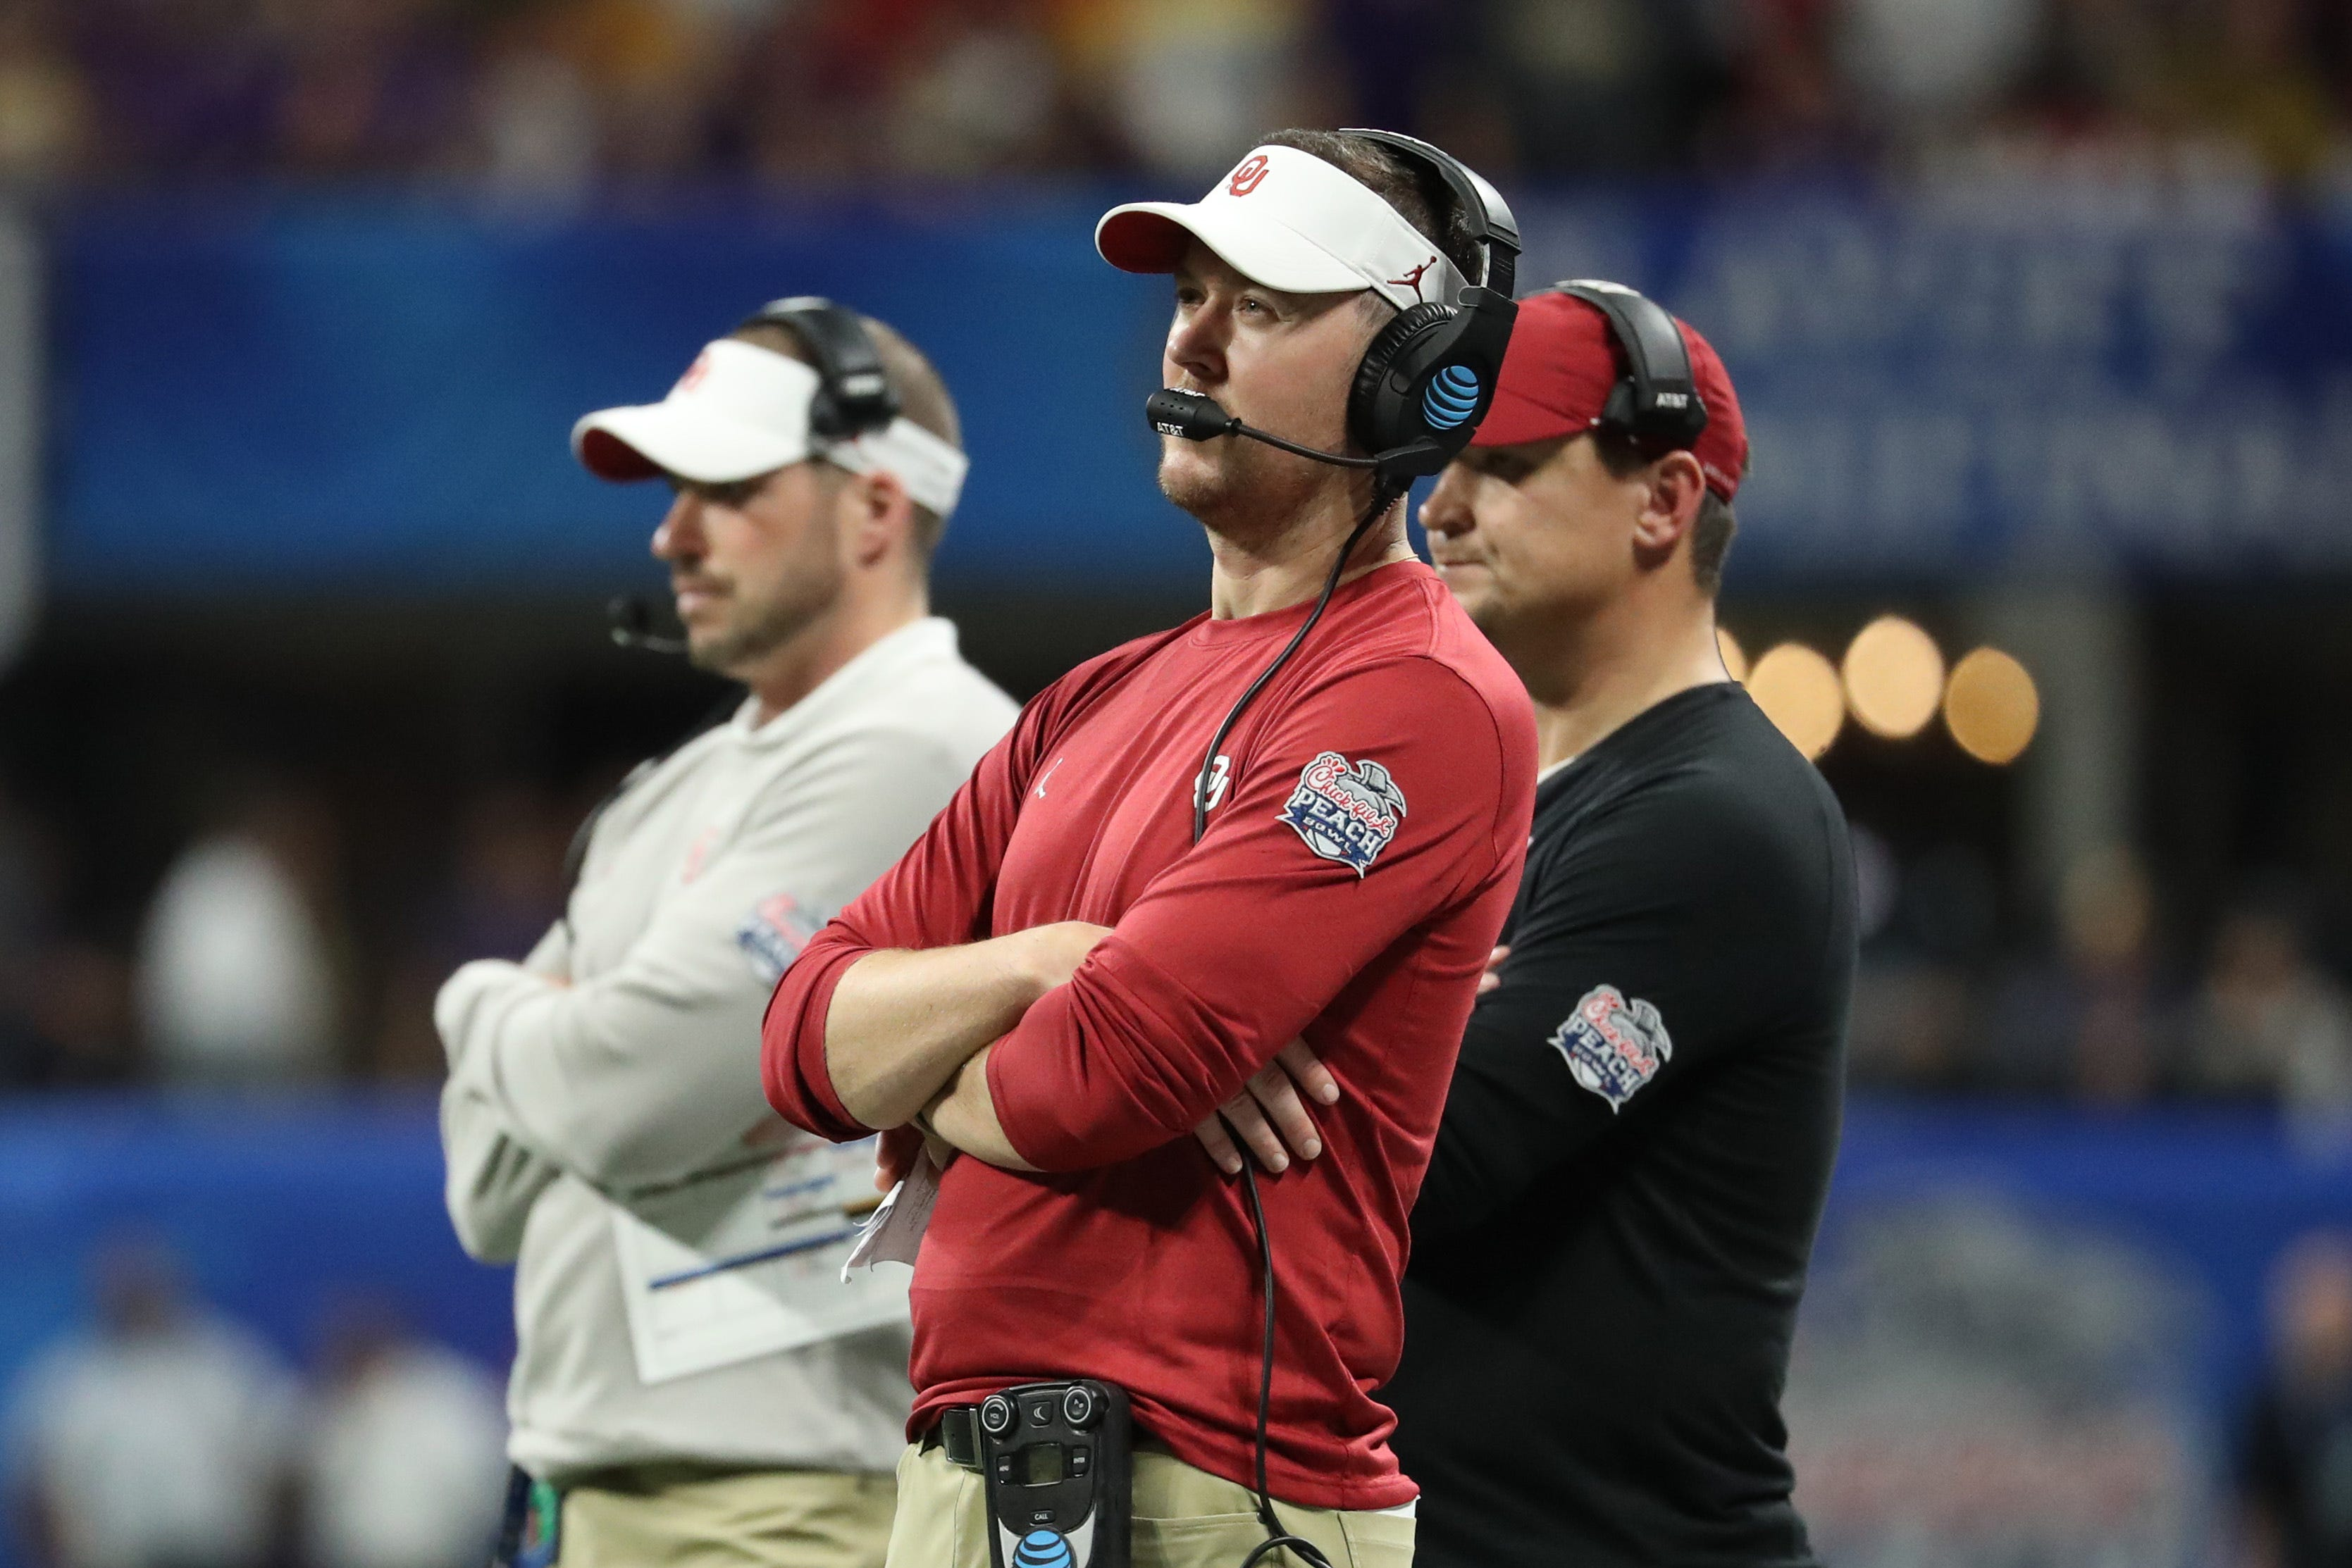 Oklahoma to begin voluntary football workouts starting on July 1